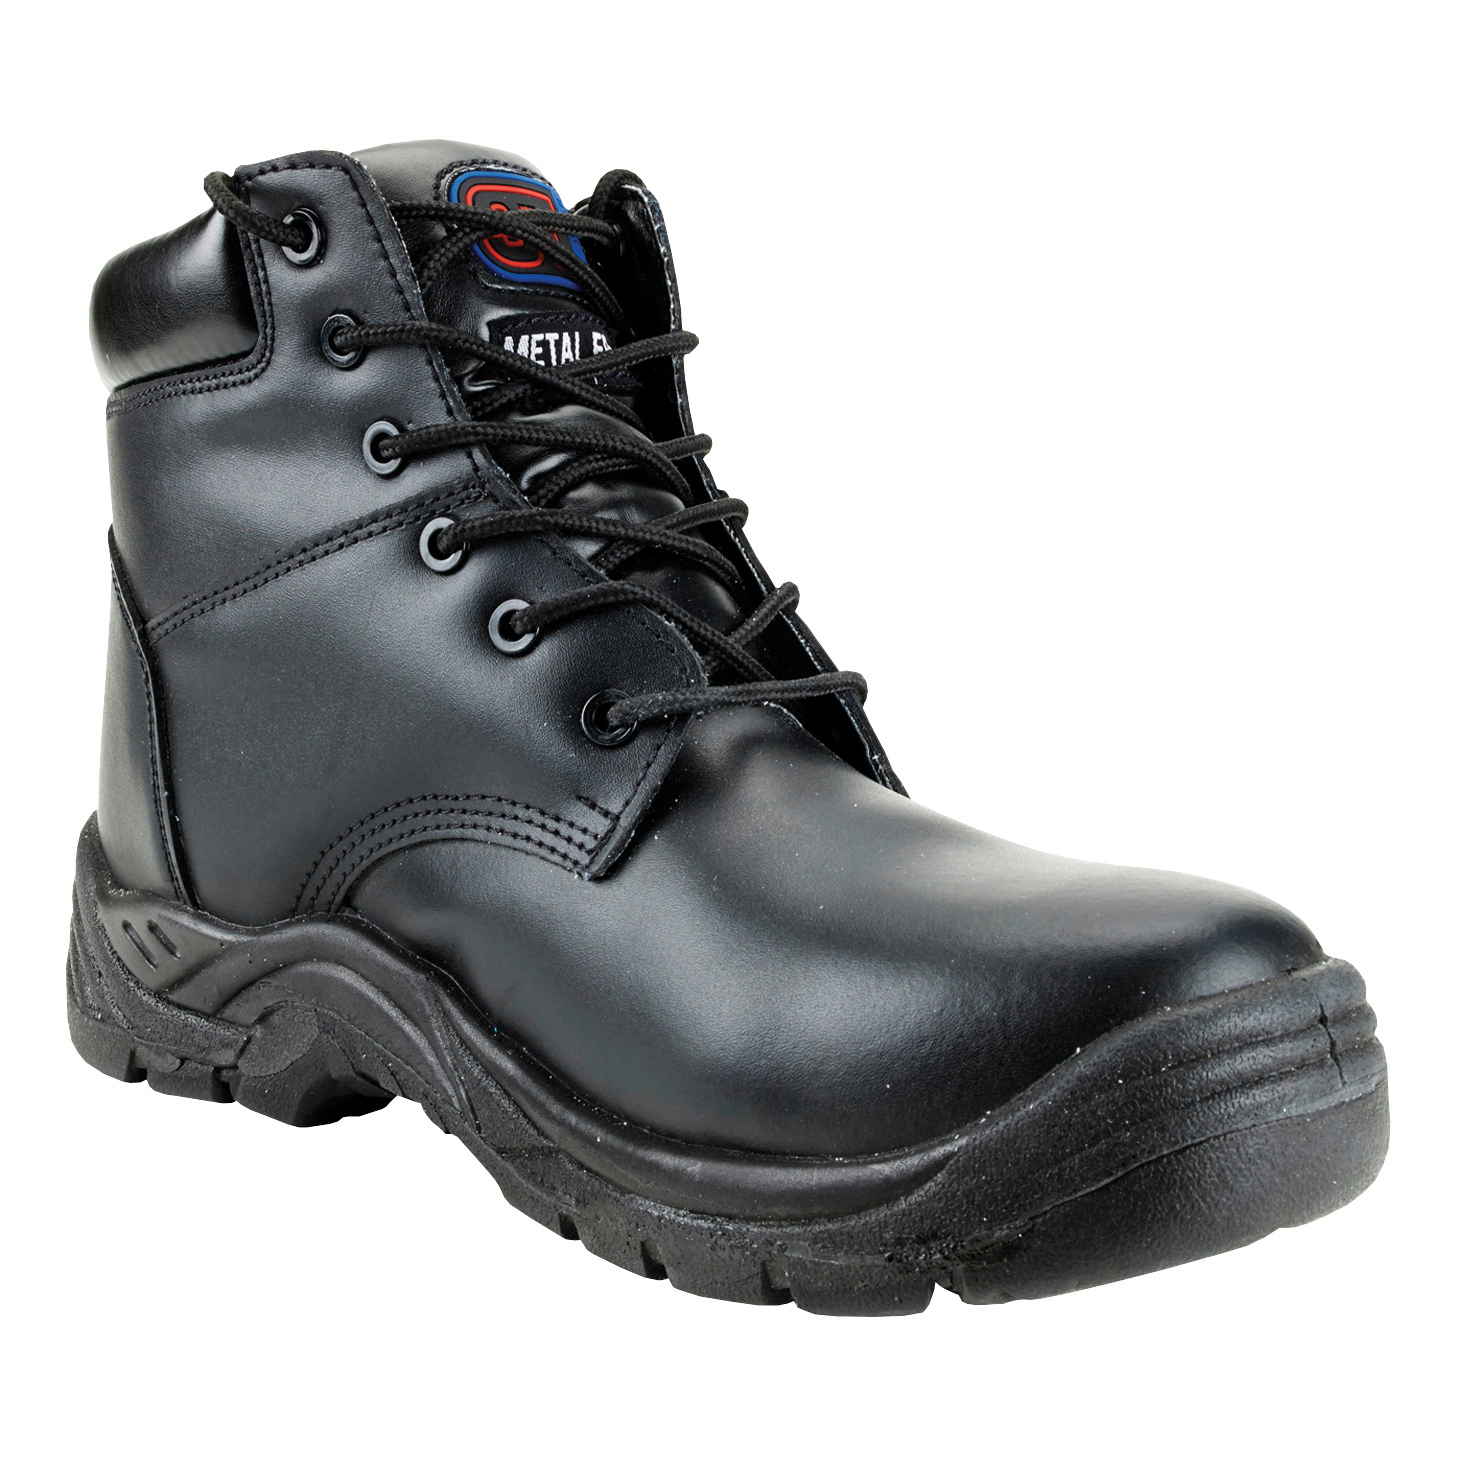 ST Toe Lite Boot Leather Comp' Midsole Safety Toecap Metal Free sze 4 Blk Ref 9017B *Approx 3 Day L/Time*